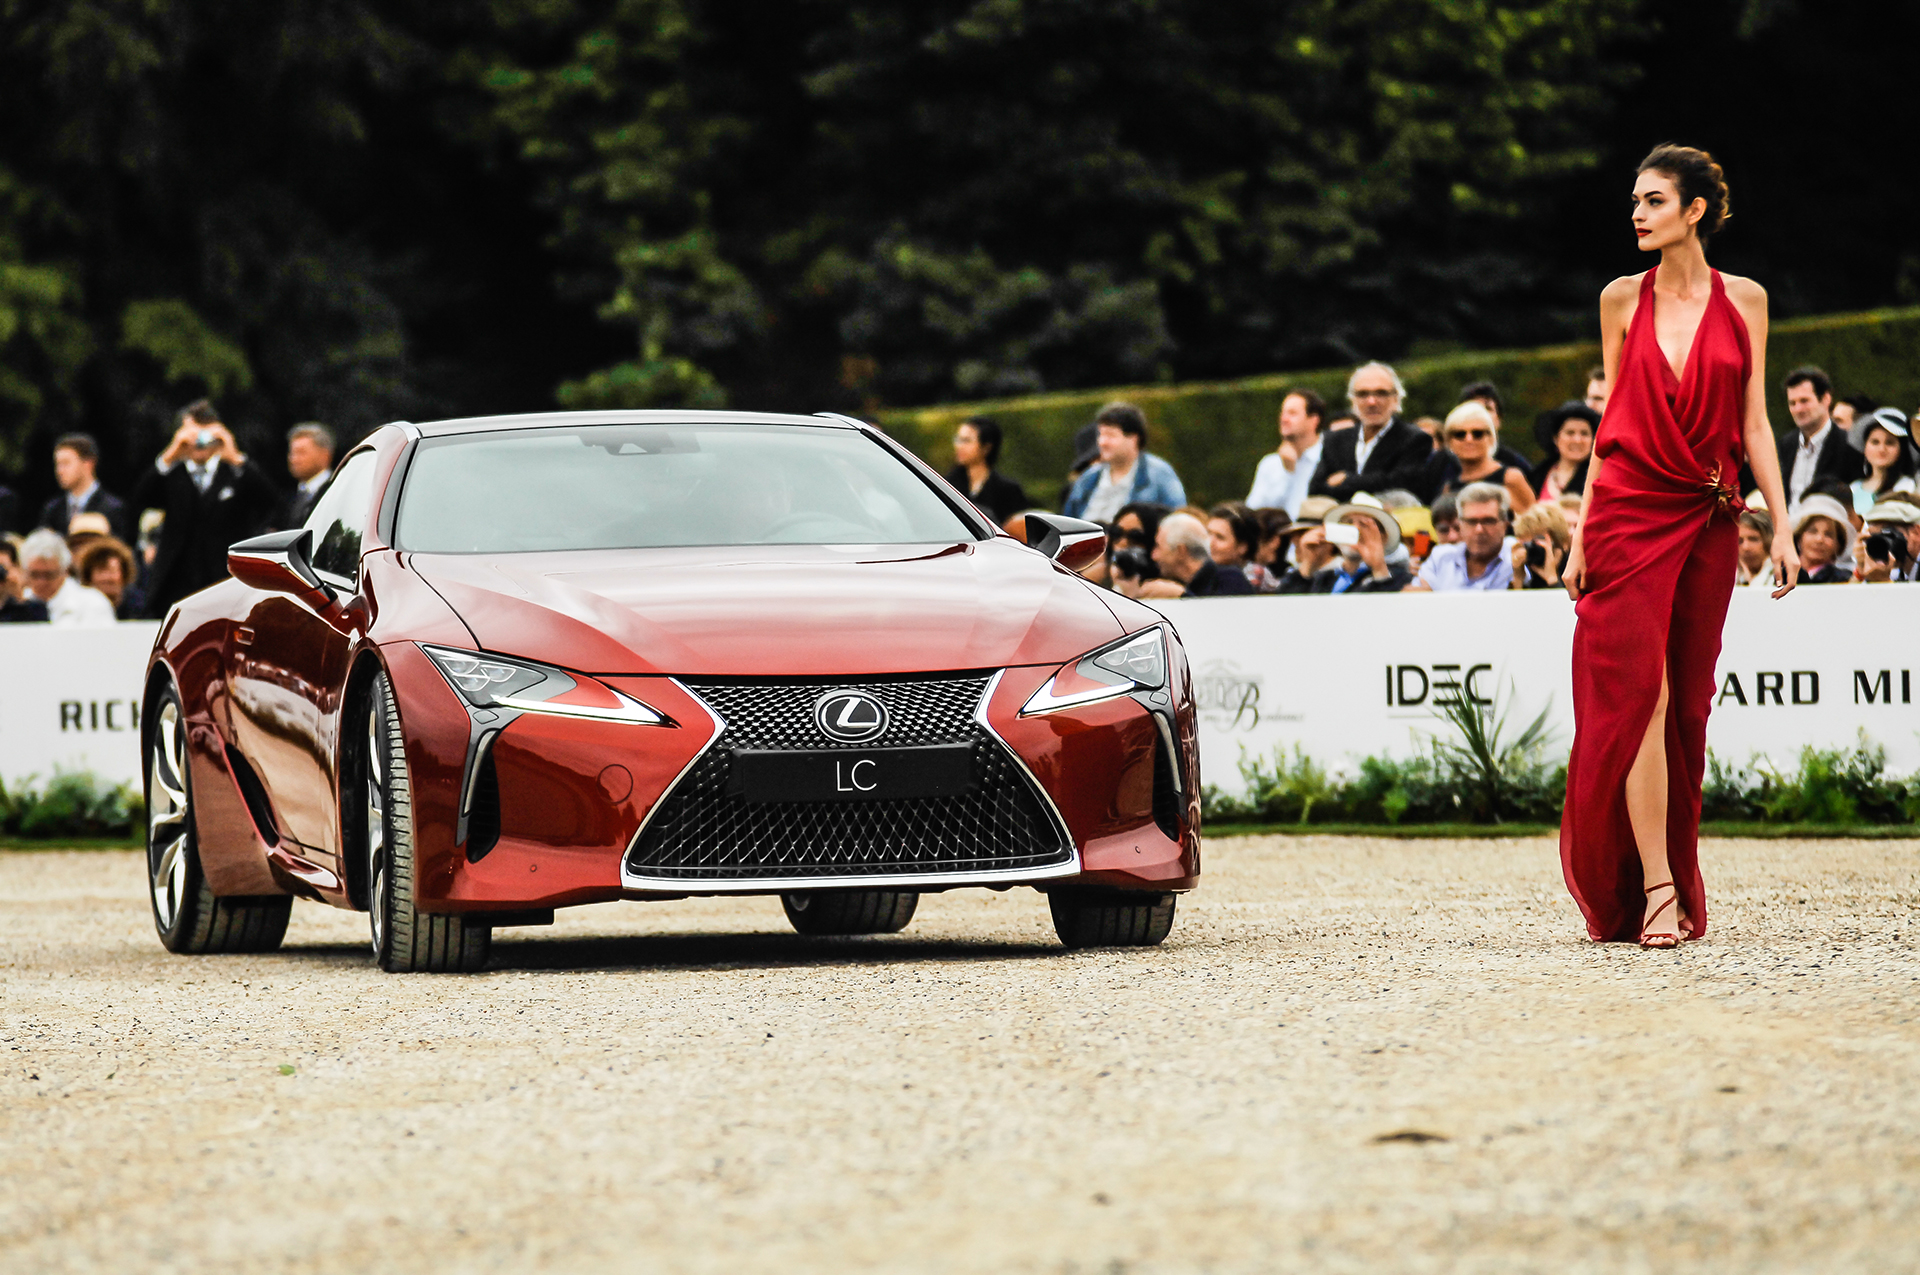 Chantilly 2016 - Lexus LC 500 - fashion Jørgen Simonsen - photo by Pierre-Yves Riom